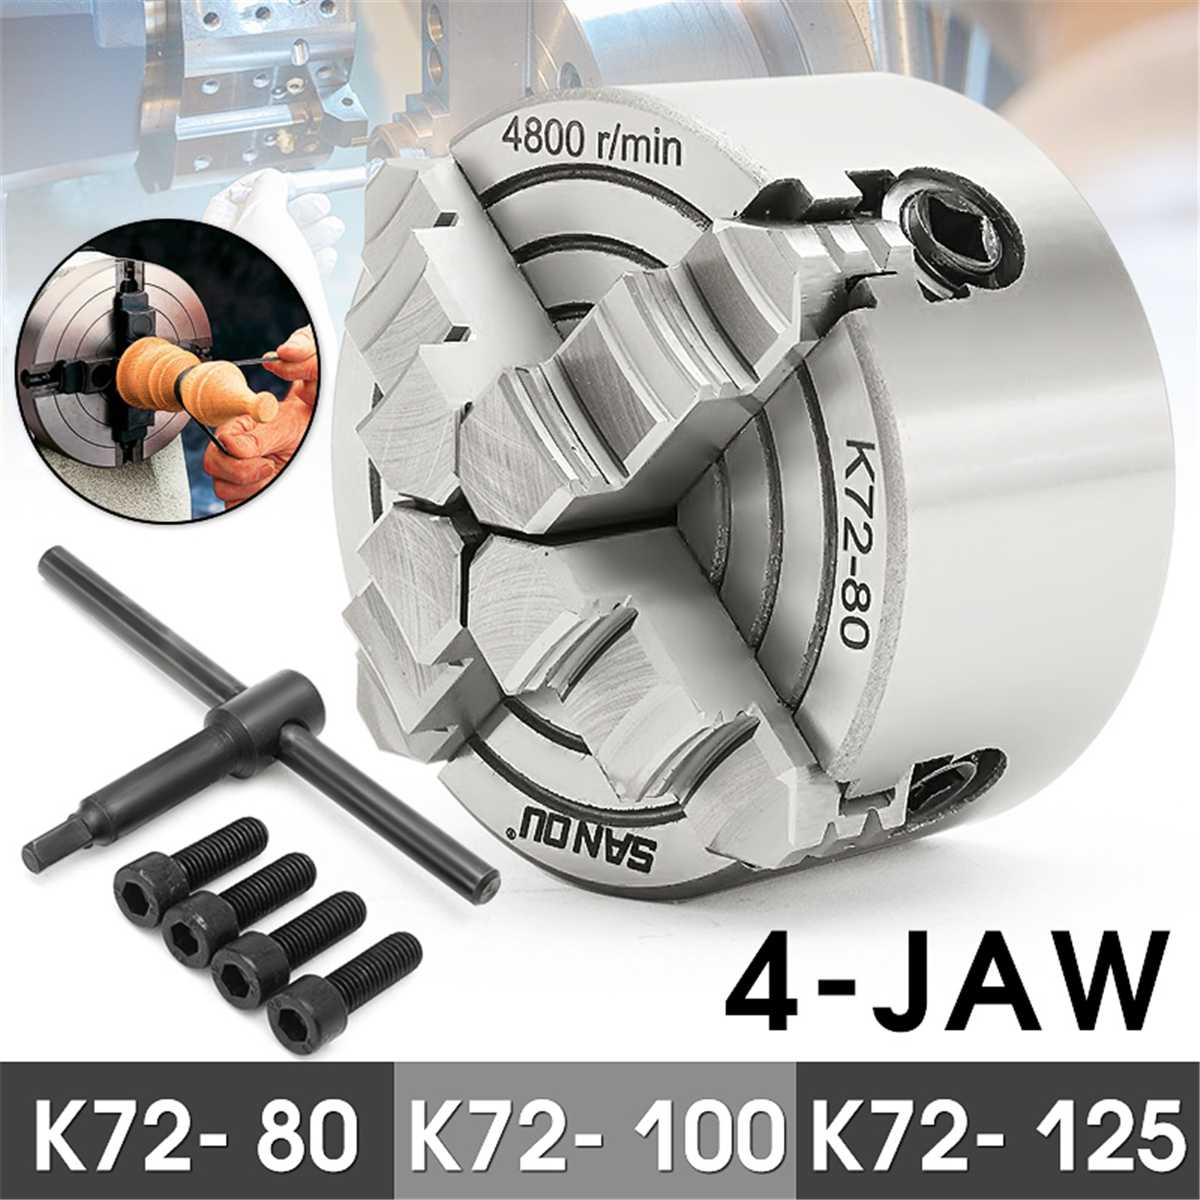 K72- 80/K72- 100/K72- 125 4 Jaw Lathe Chuck 80mm/100mm/125mm Independent Self-Centering 1pcs Safety Chuck Key 3pcs Mounting BoltK72- 80/K72- 100/K72- 125 4 Jaw Lathe Chuck 80mm/100mm/125mm Independent Self-Centering 1pcs Safety Chuck Key 3pcs Mounting Bolt